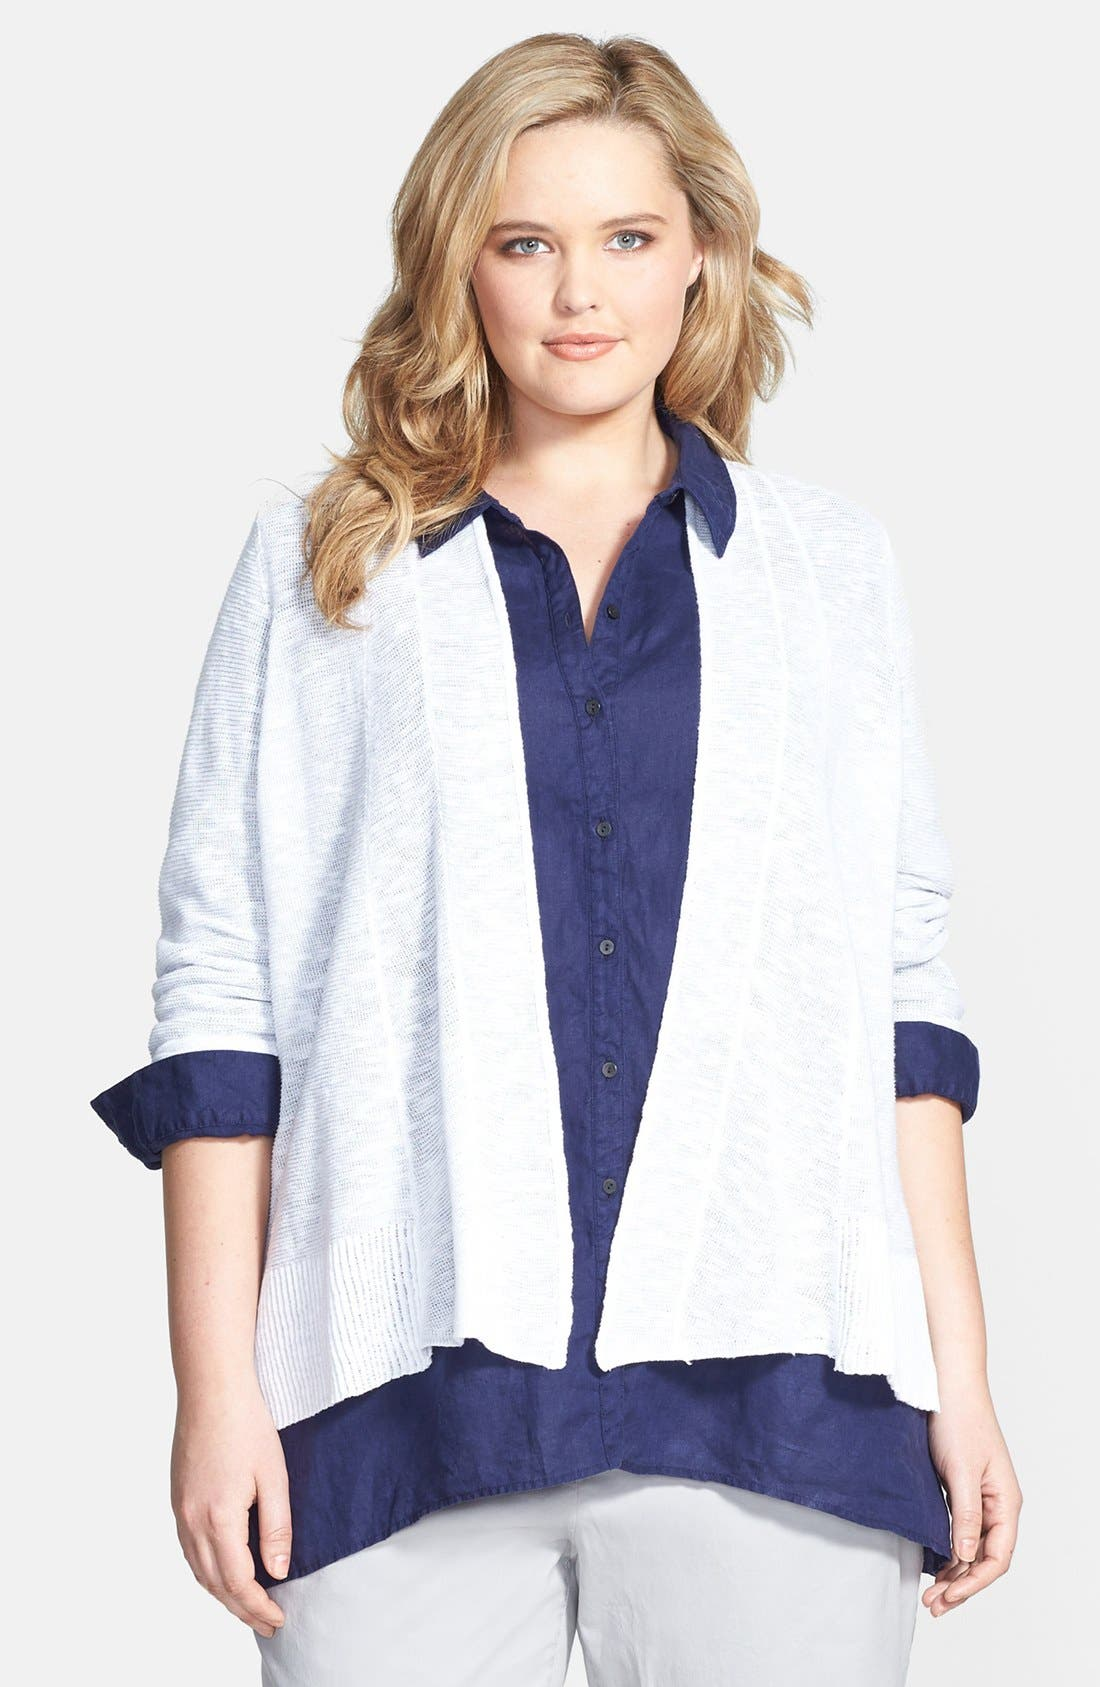 Alternate Image 1 Selected - Eileen Fisher Organic Linen & Cotton Shaped Cardigan (Plus Size)